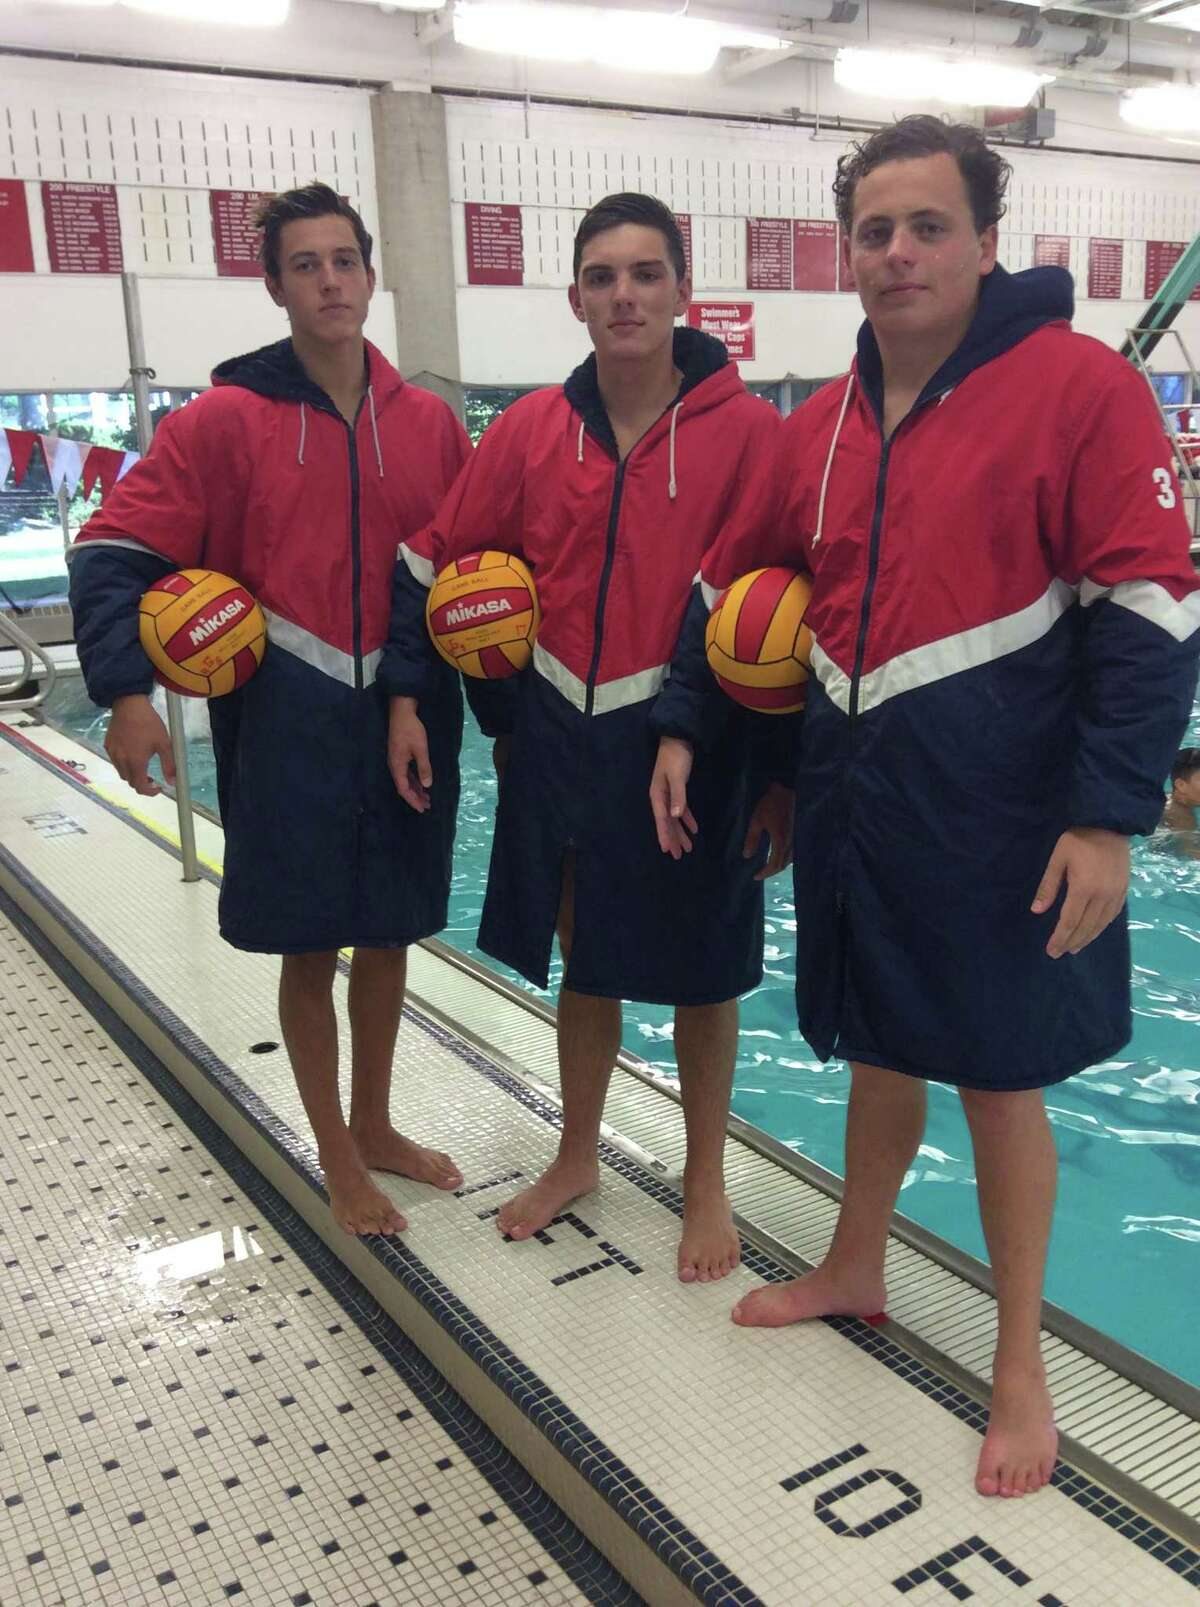 From left to right, Niki de la Sierra, Kyle Laufenberg and Tegan D?'Agostino are senior captains on the Greenwich High School water polo team. September 4, 2018